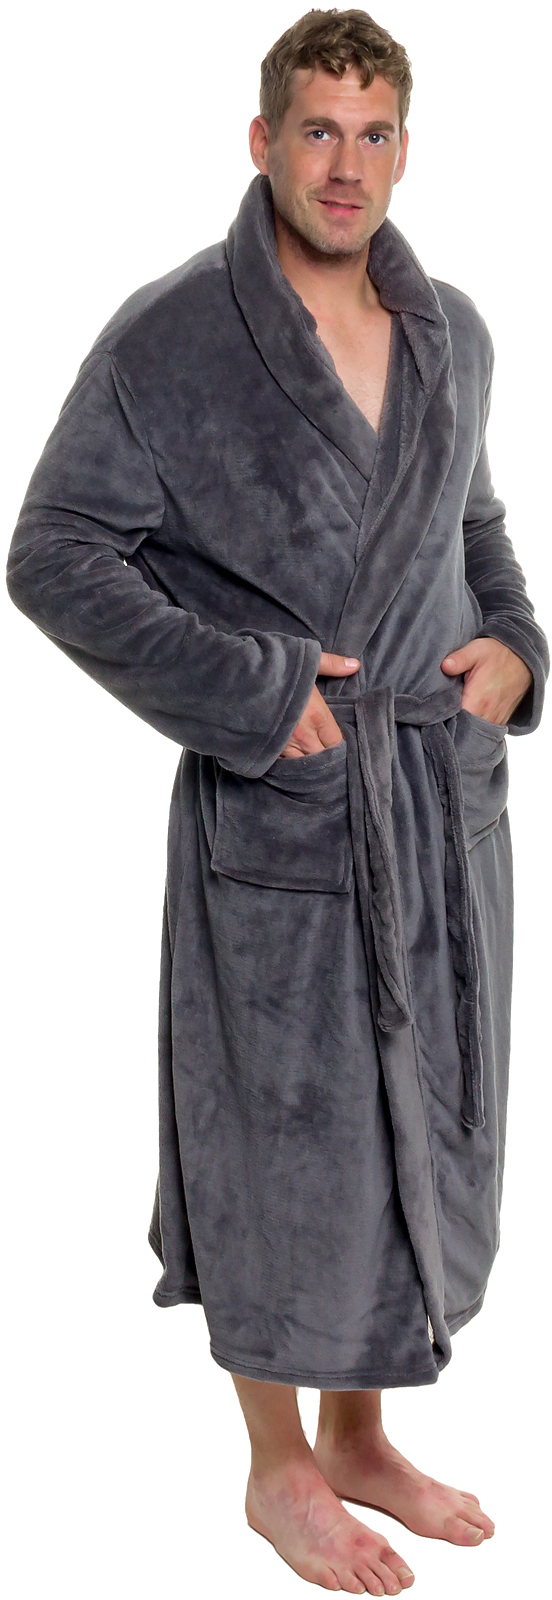 91c303e03c ROSS MICHAELS Mens Plush Shawl Kimono Hooded Bath Robe